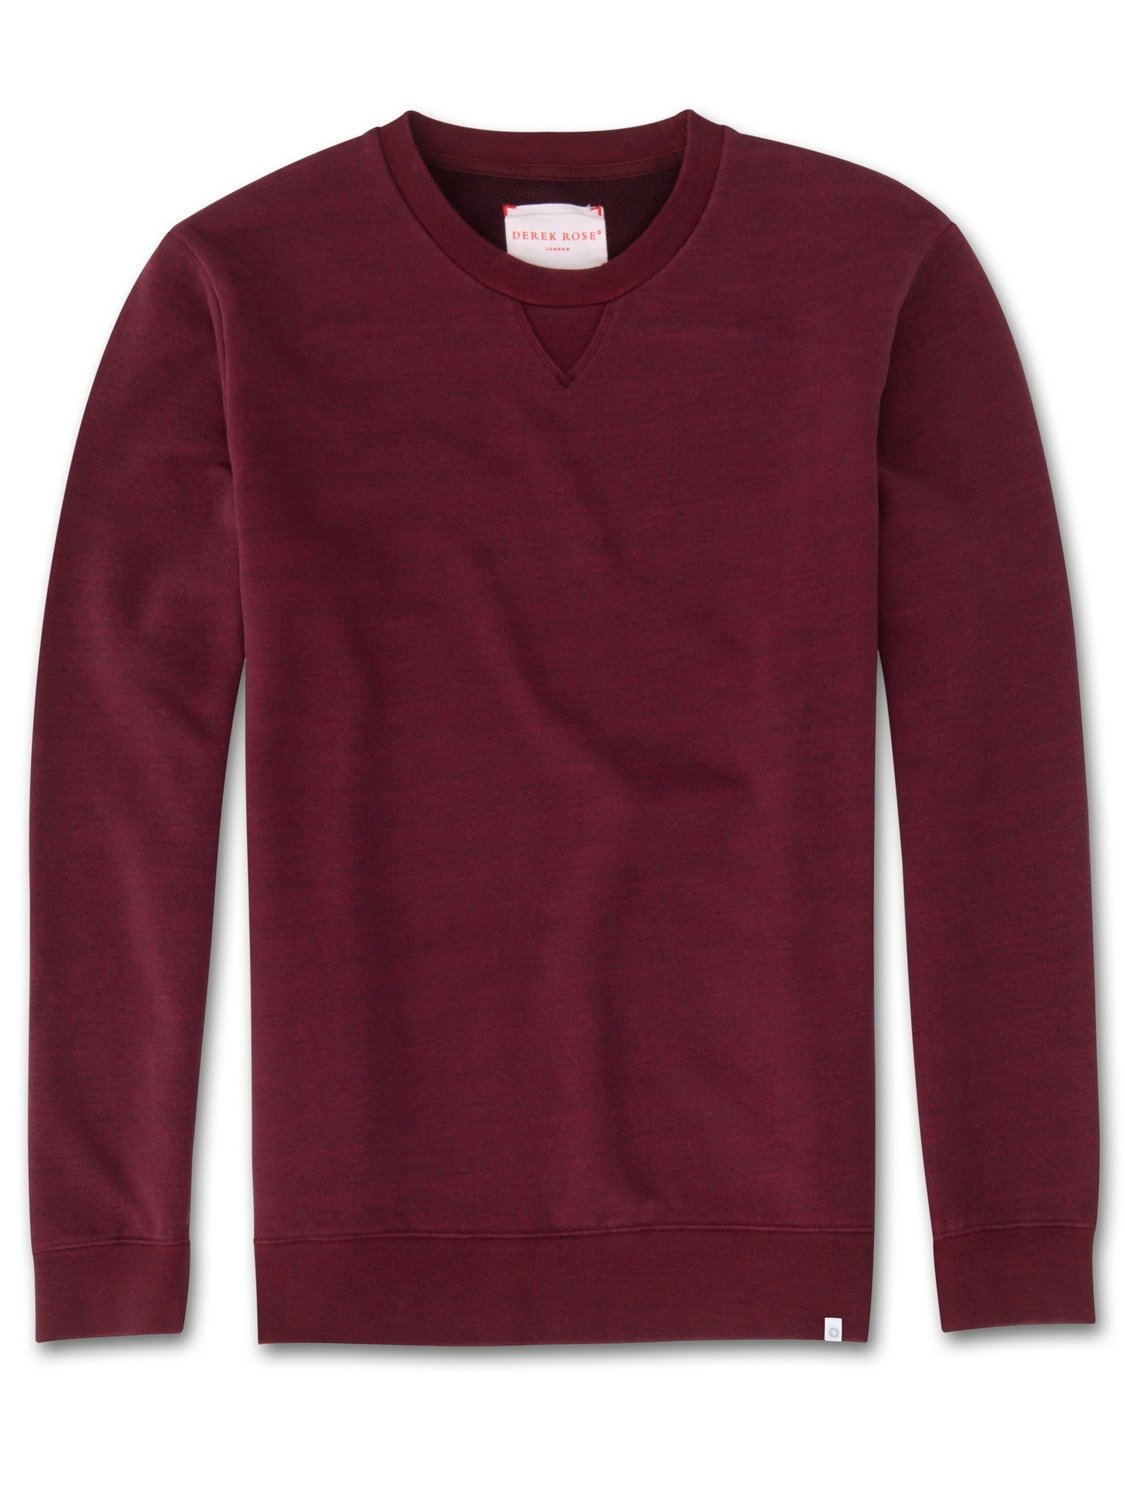 Men's Sweatshirt Devon Loopback Cotton Burgundy